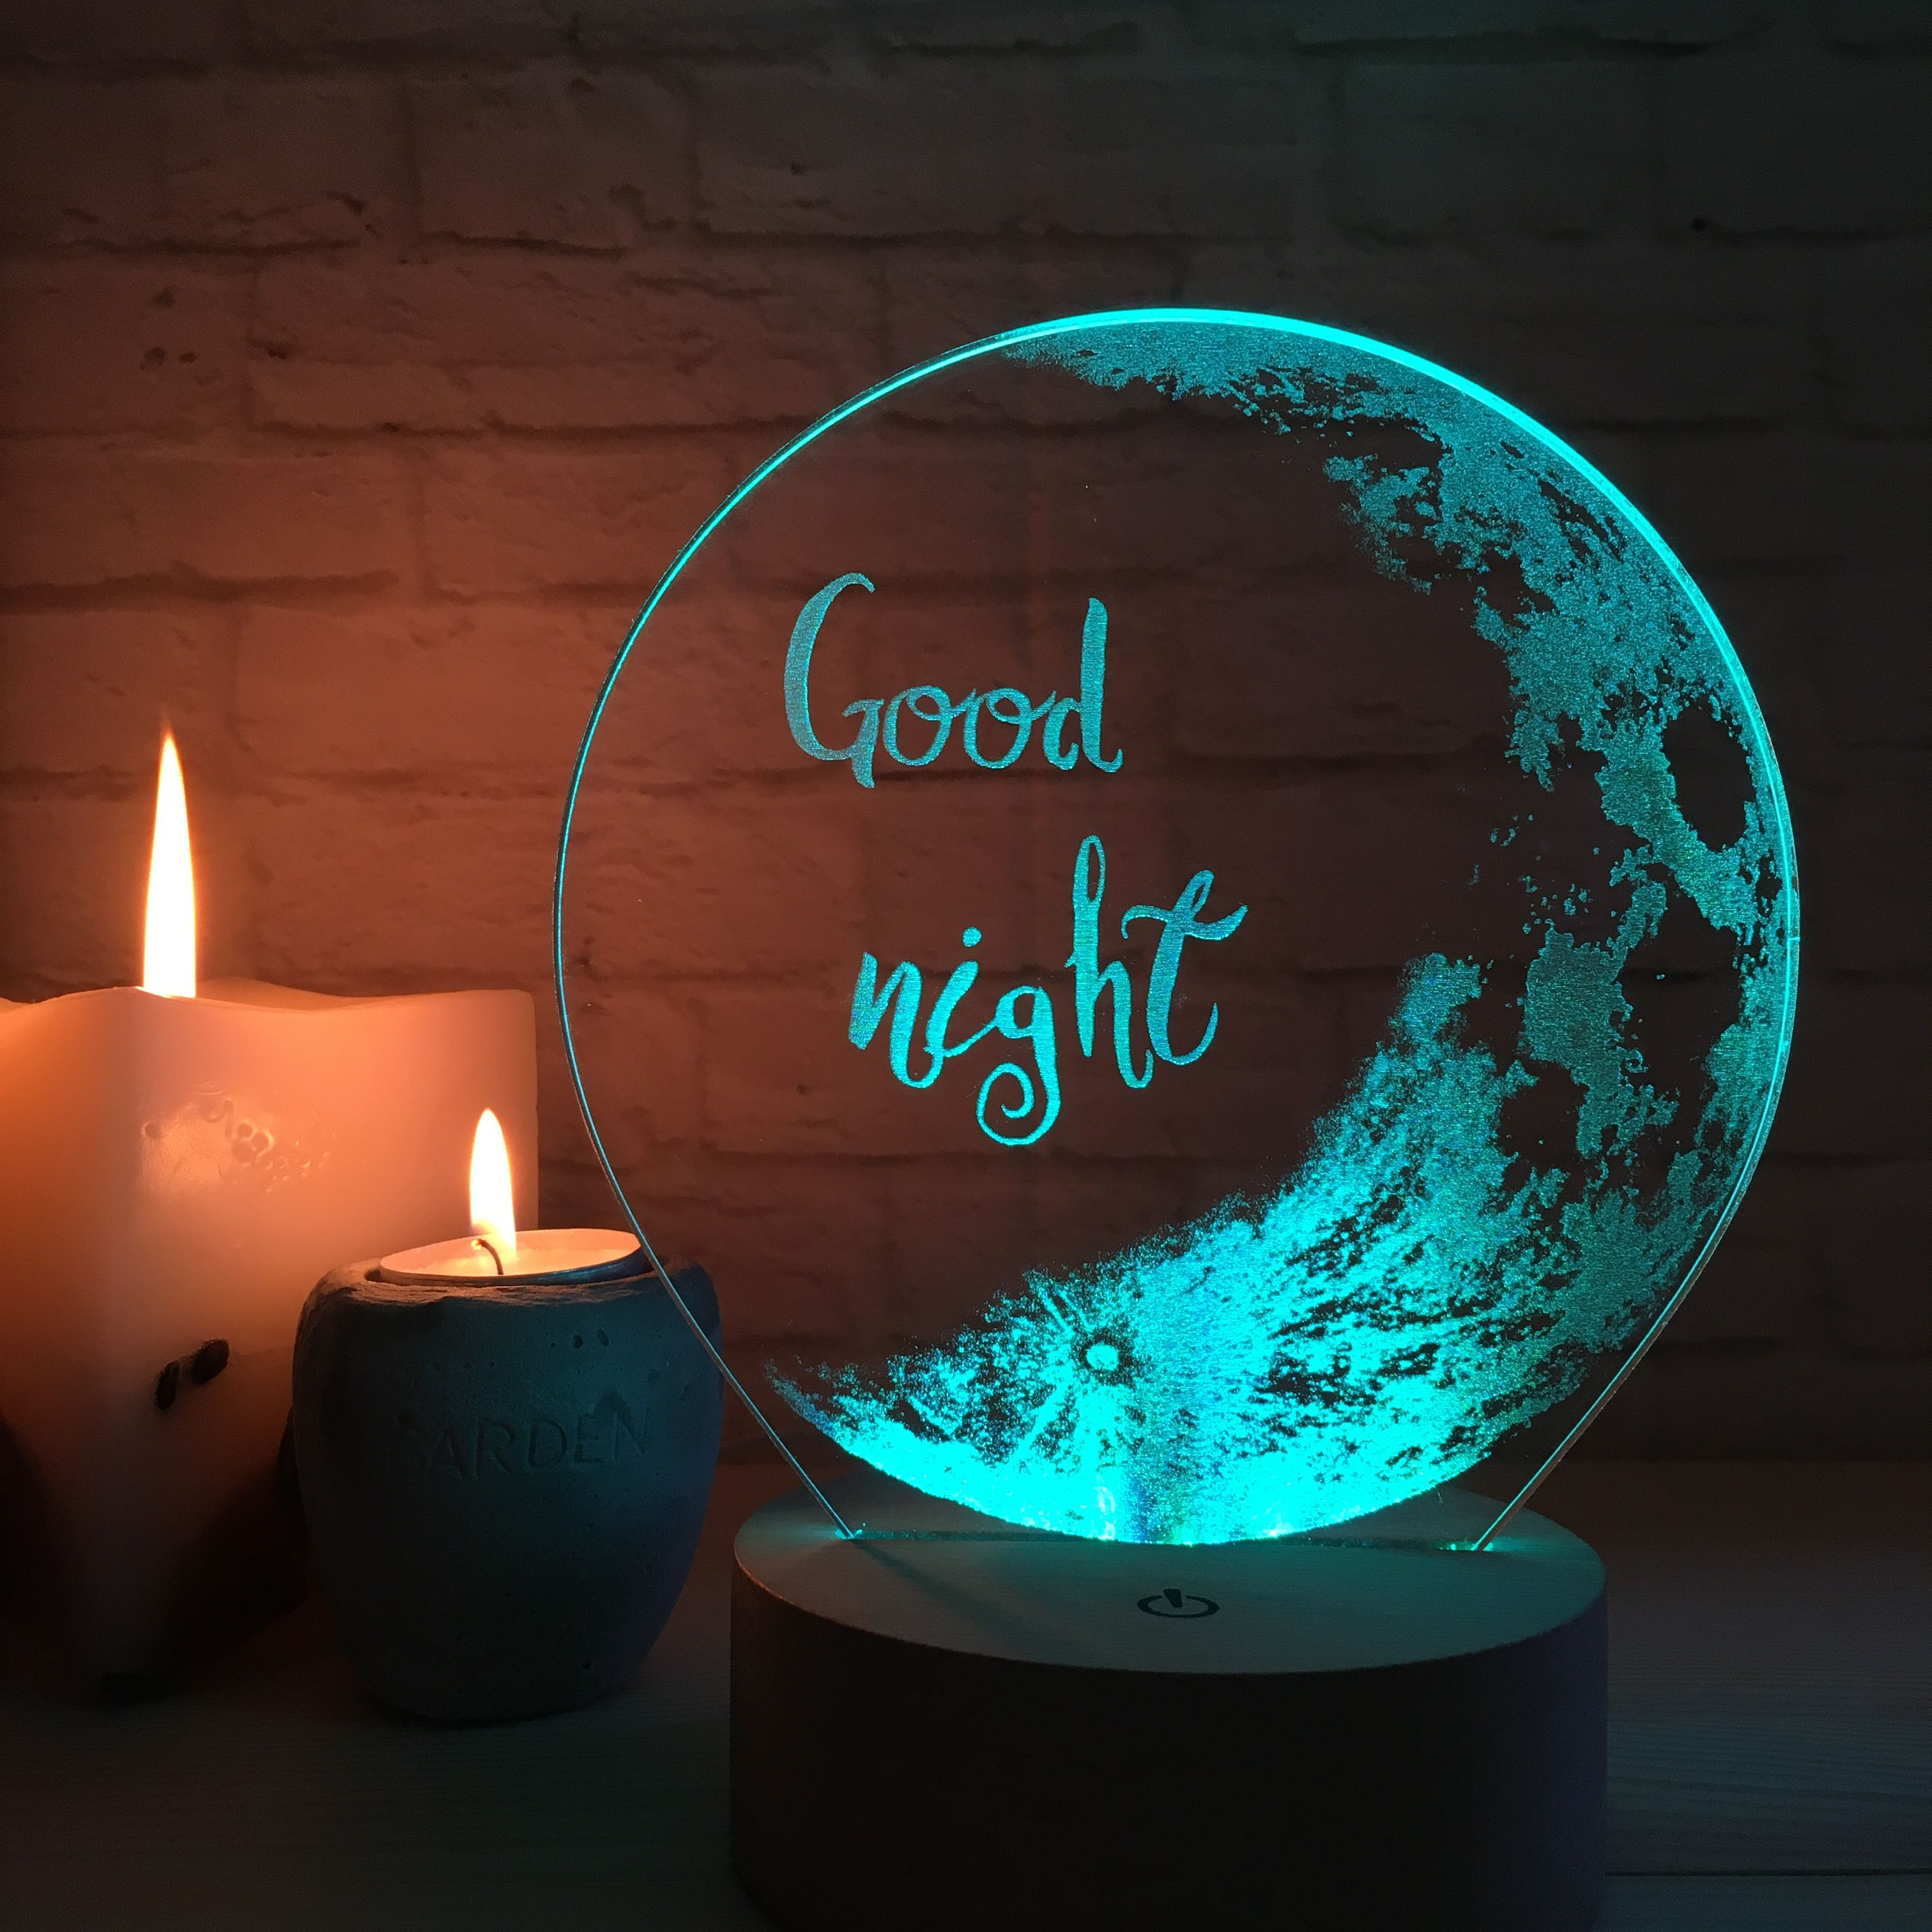 Good Night Wish Bedroom Table Lamp LED, Moon Shade Personalized